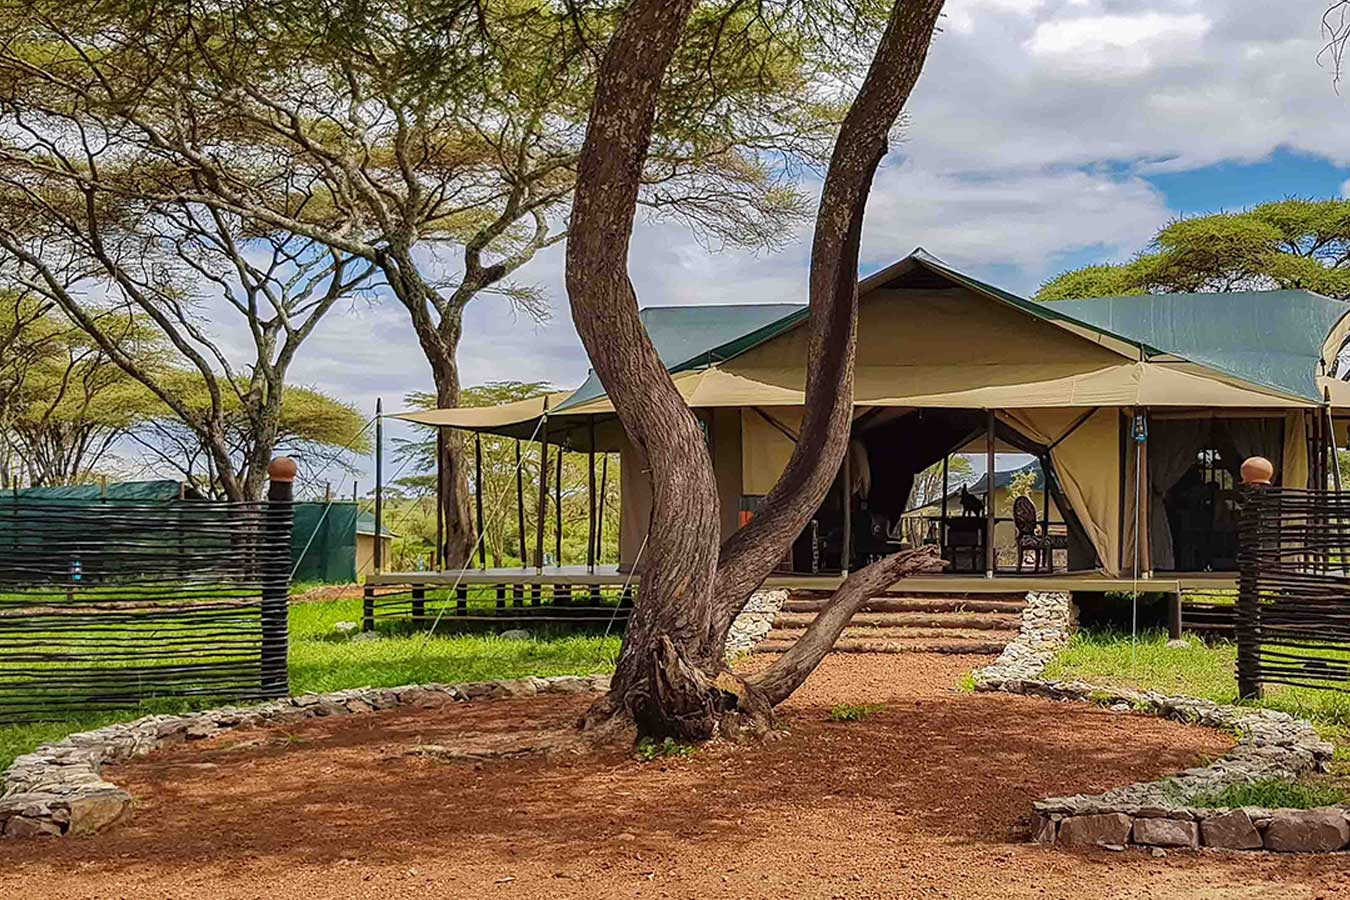 This Luxury Camp is ideally located within Central Seronera area of the famous Serengeti National Park in Tanzania